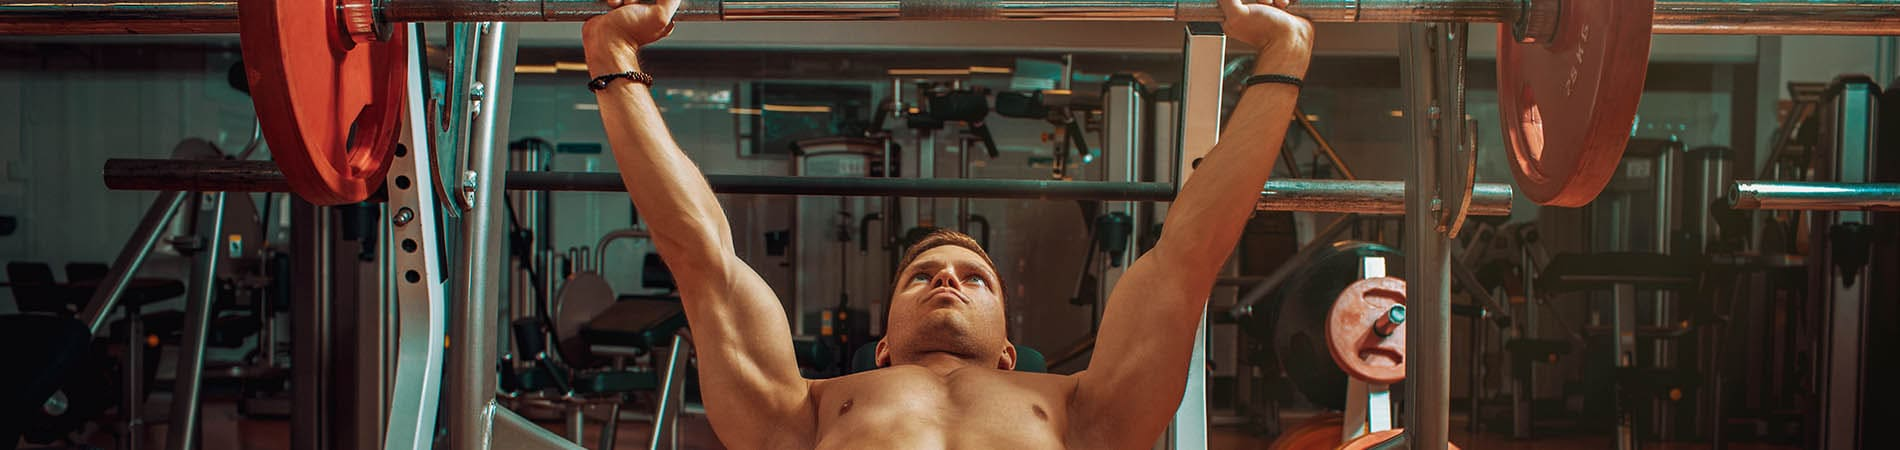 Best Upper Body Workout And Exercises Old School Labs